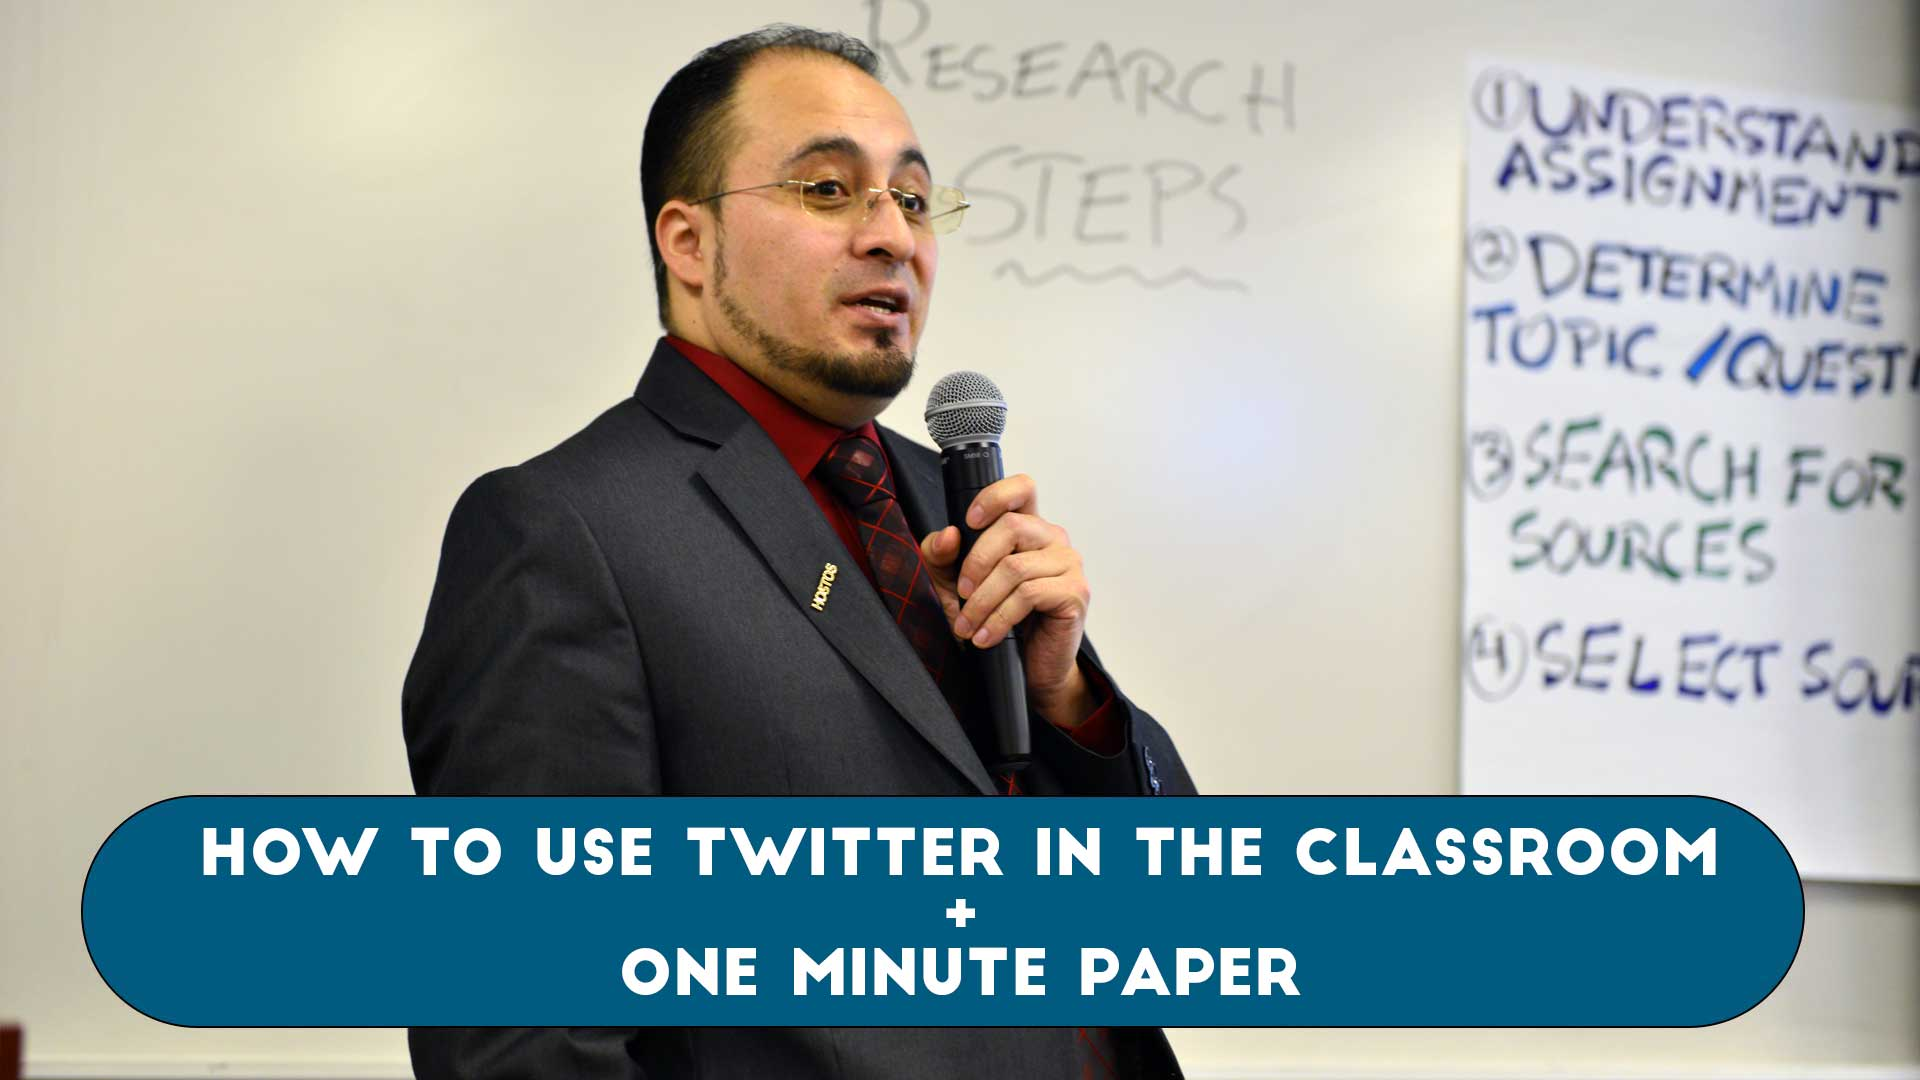 How to use Twitter in the classroom one minute paper